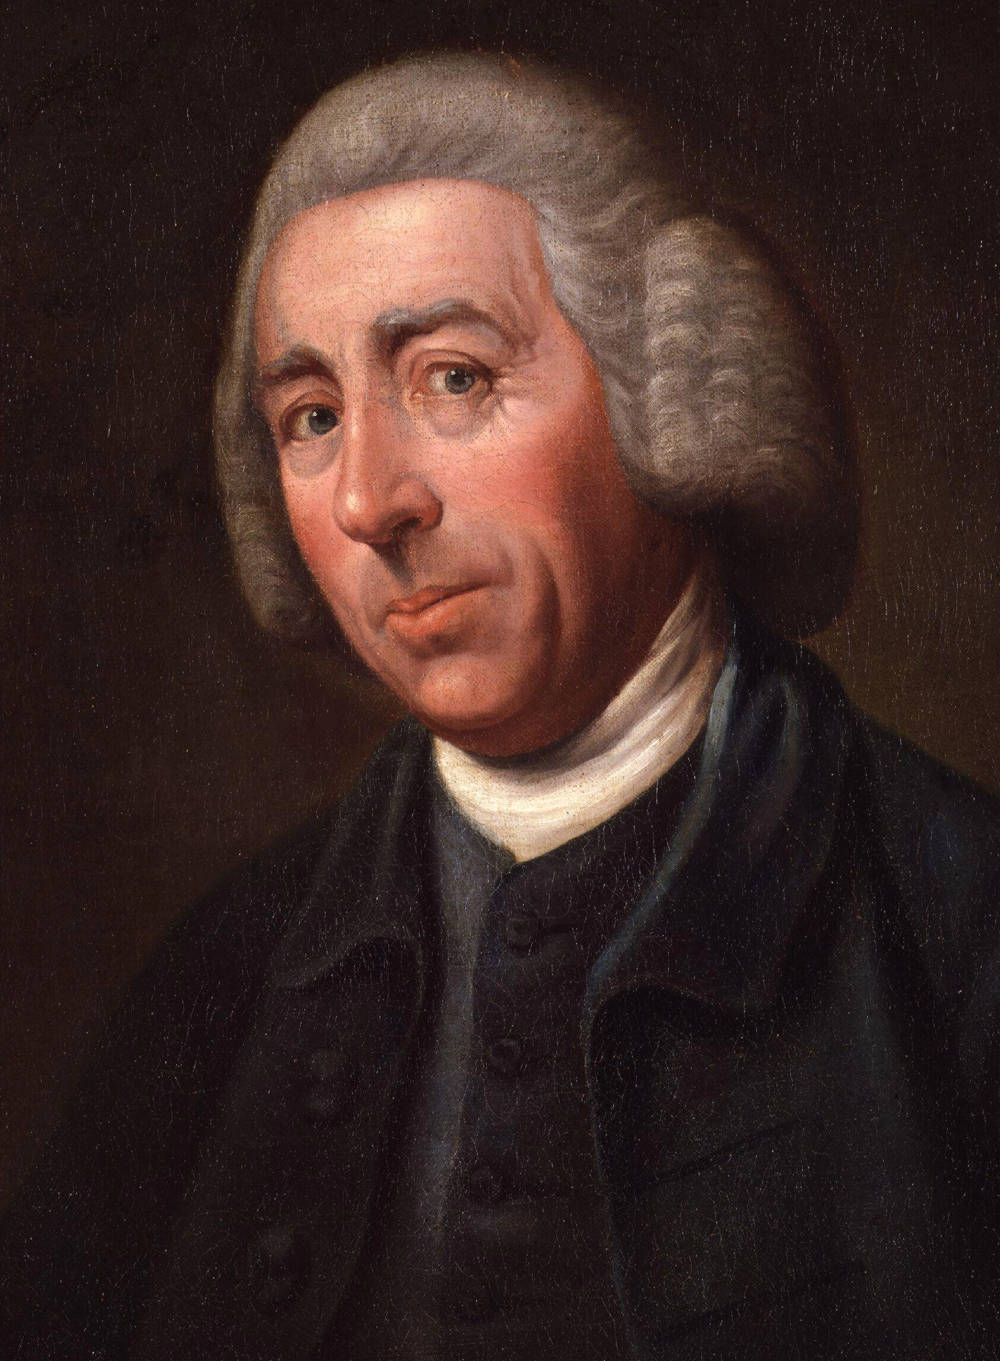 Lancelot 'Capability' Brown, by Nathaniel Dance